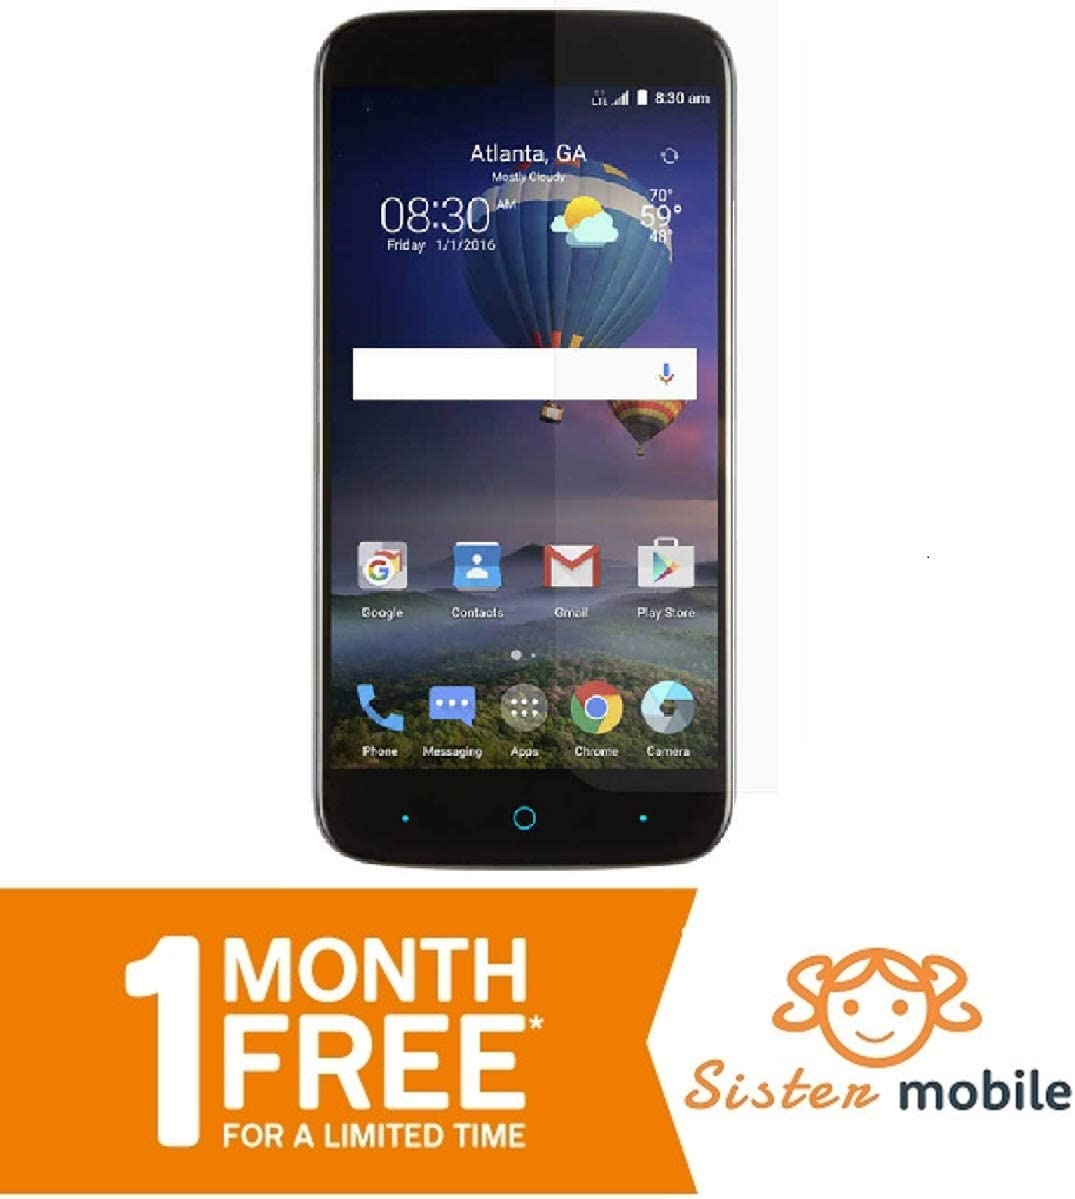 Amazon Com Quest Prepaid Cell Phone One Month Free Service Charger Smartphone Android With No Contract After The Free Month It Starts 5 A Month With Cheapest Rate